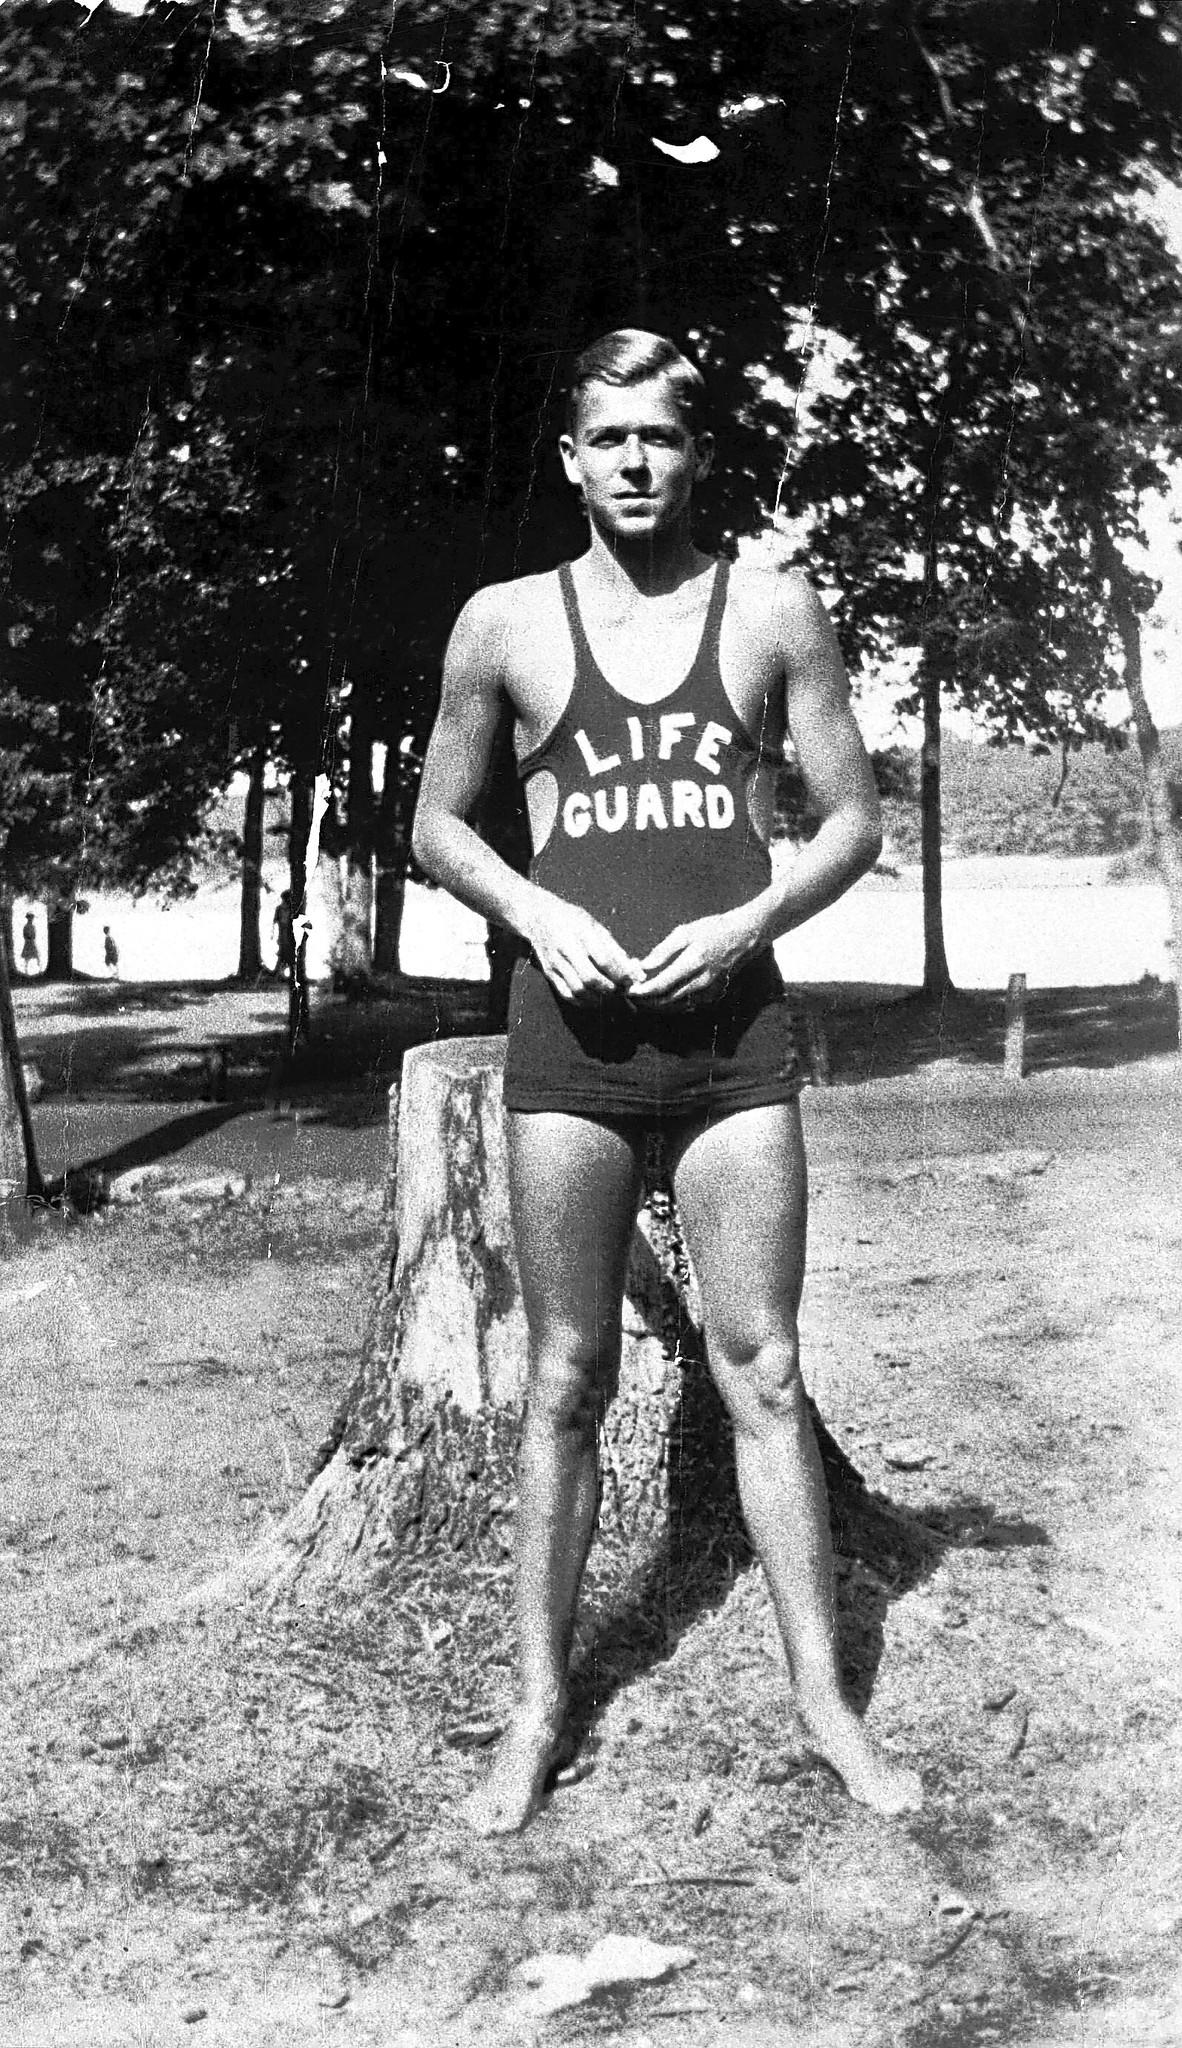 Former President Ronald Reagan worked as a lifeguard for seven summers at Lowell Park, just north of his boyhood hometown of Dixon, Ill., and reportedly saved 77 lives while guarding the beach.